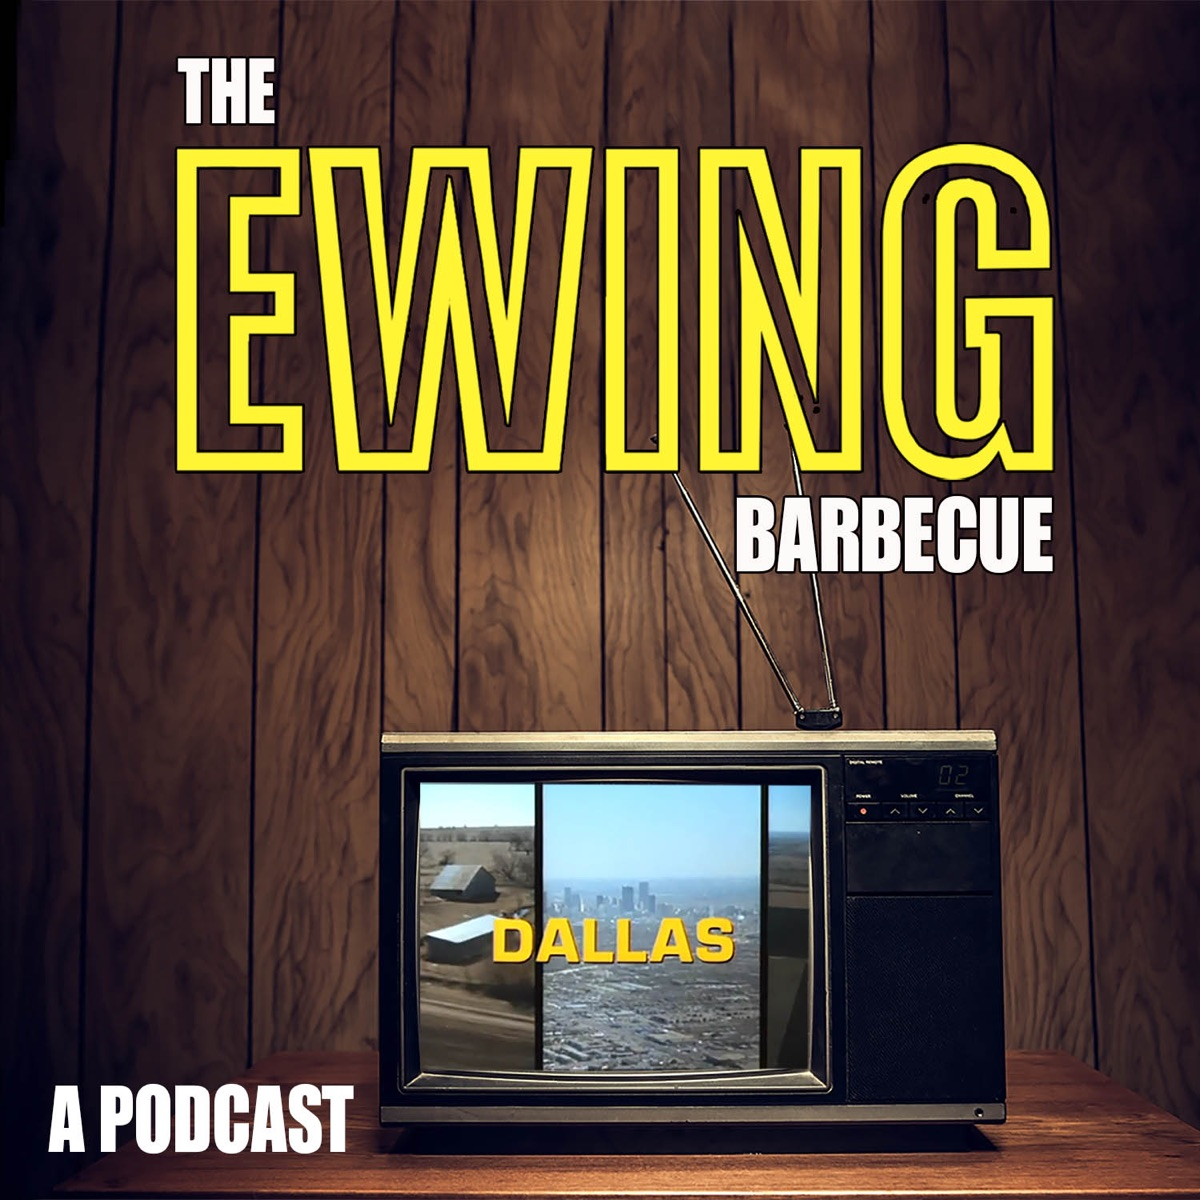 The Ewing Barbecue Podcast